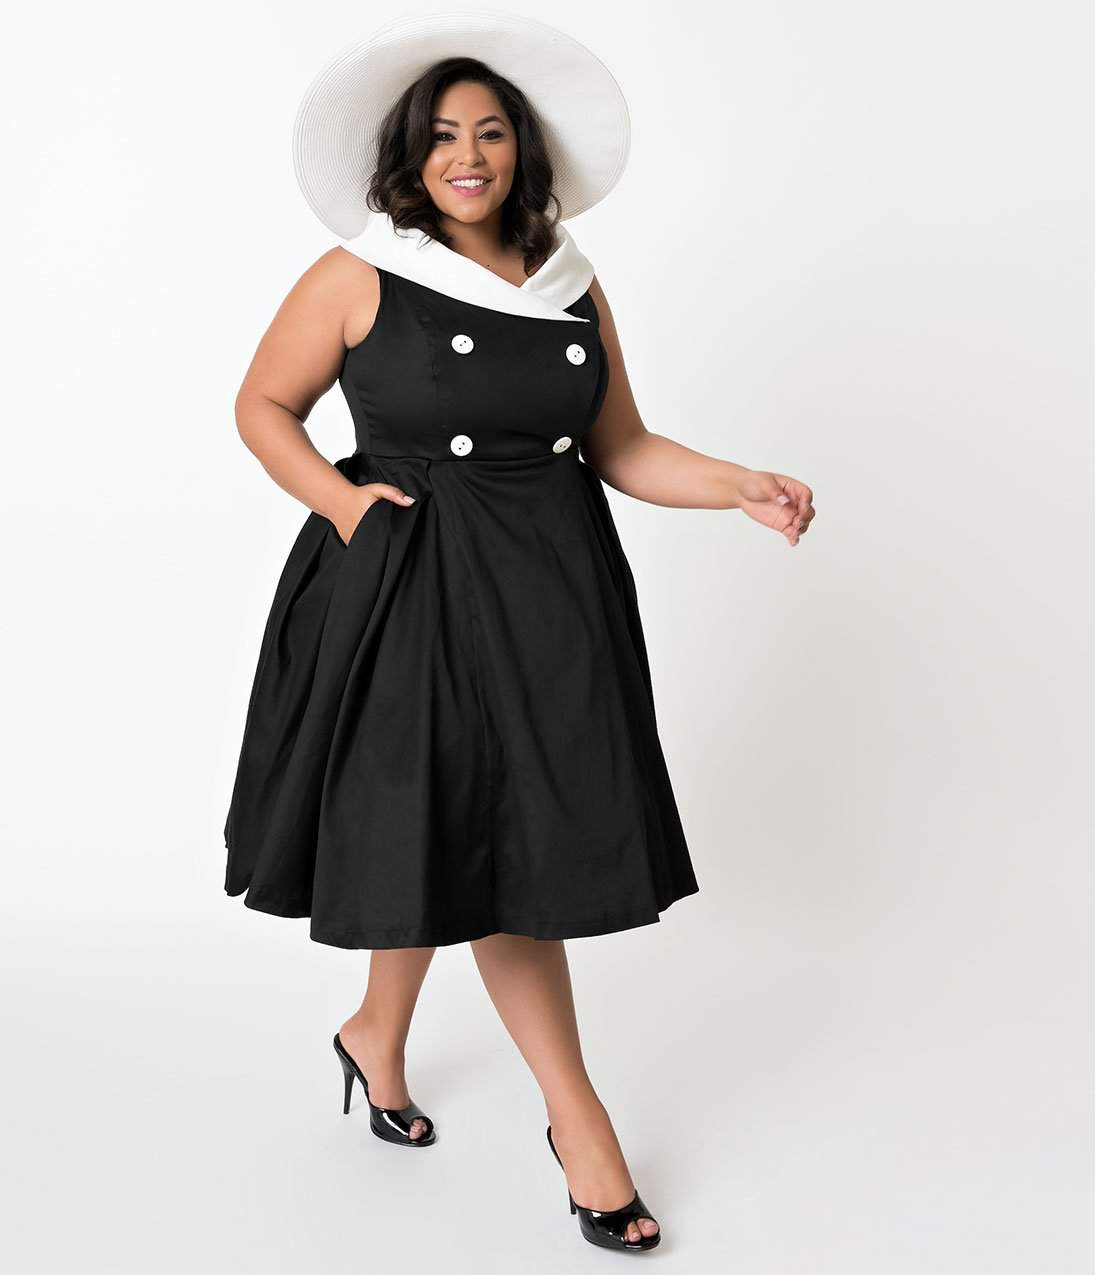 Shop the Unique Vintage x Barbie Collection in Plus Sizes